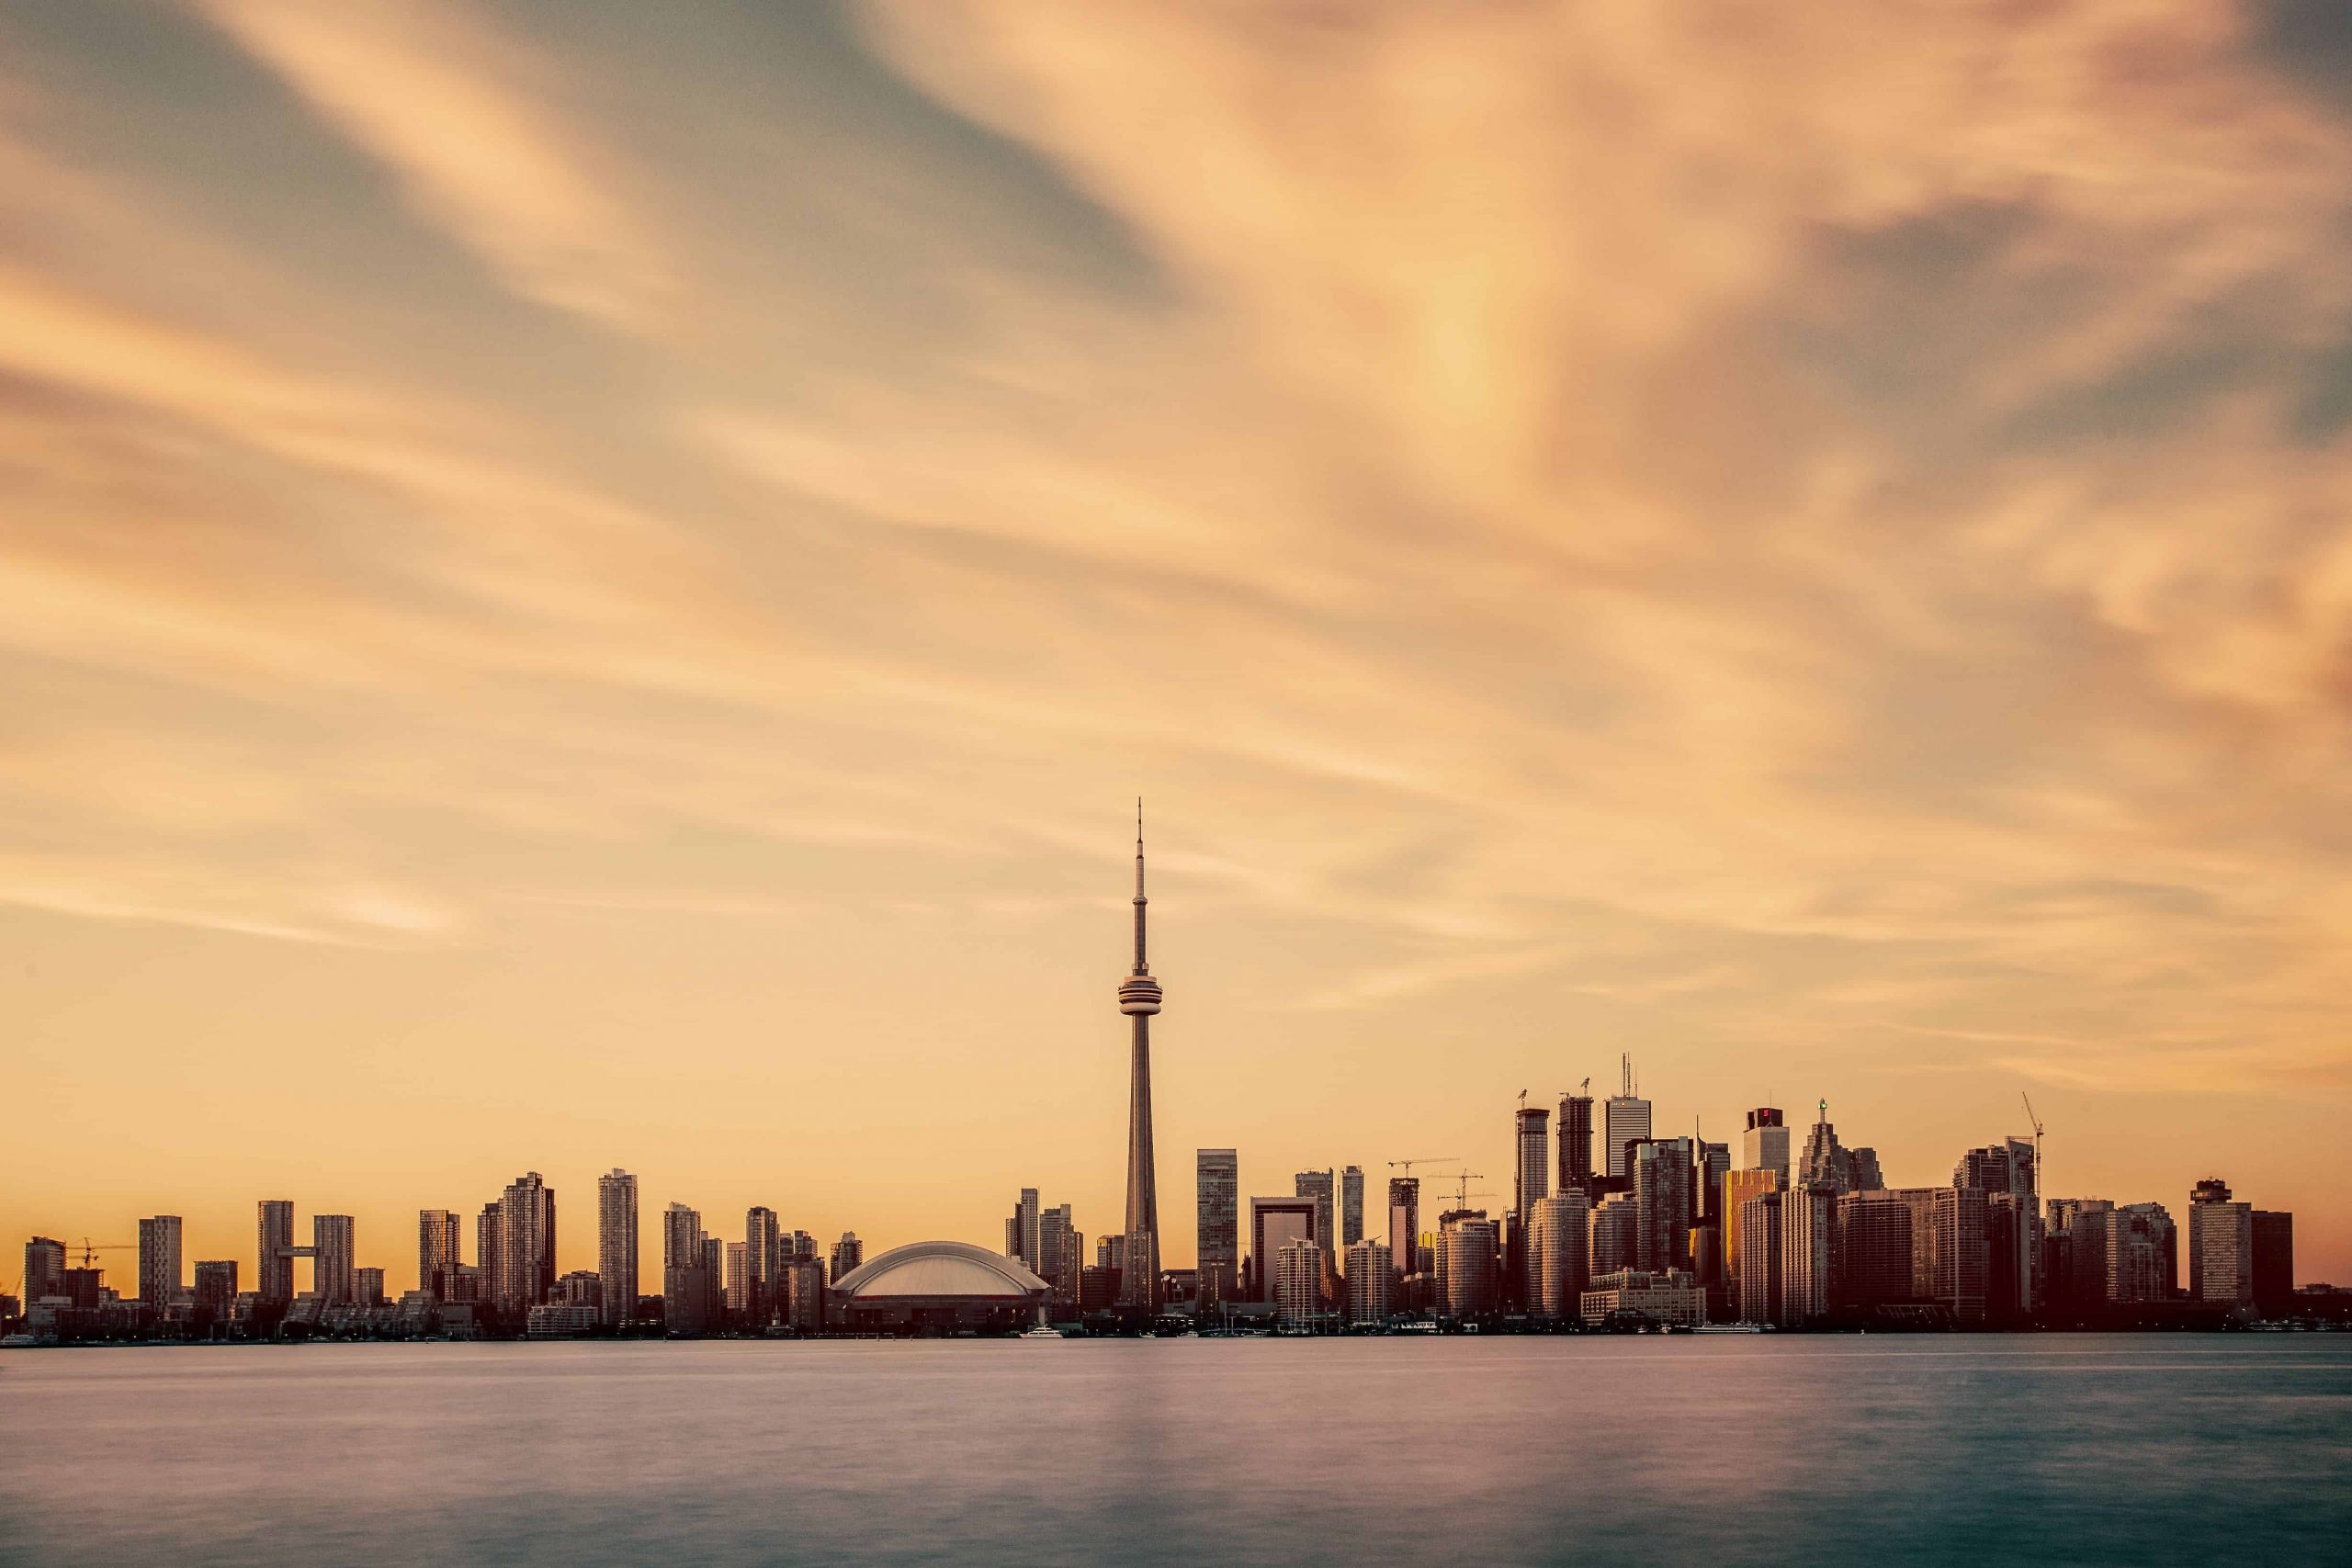 Toronto/Hamilton for $159 roundtrip… and more Cyber Monday deals